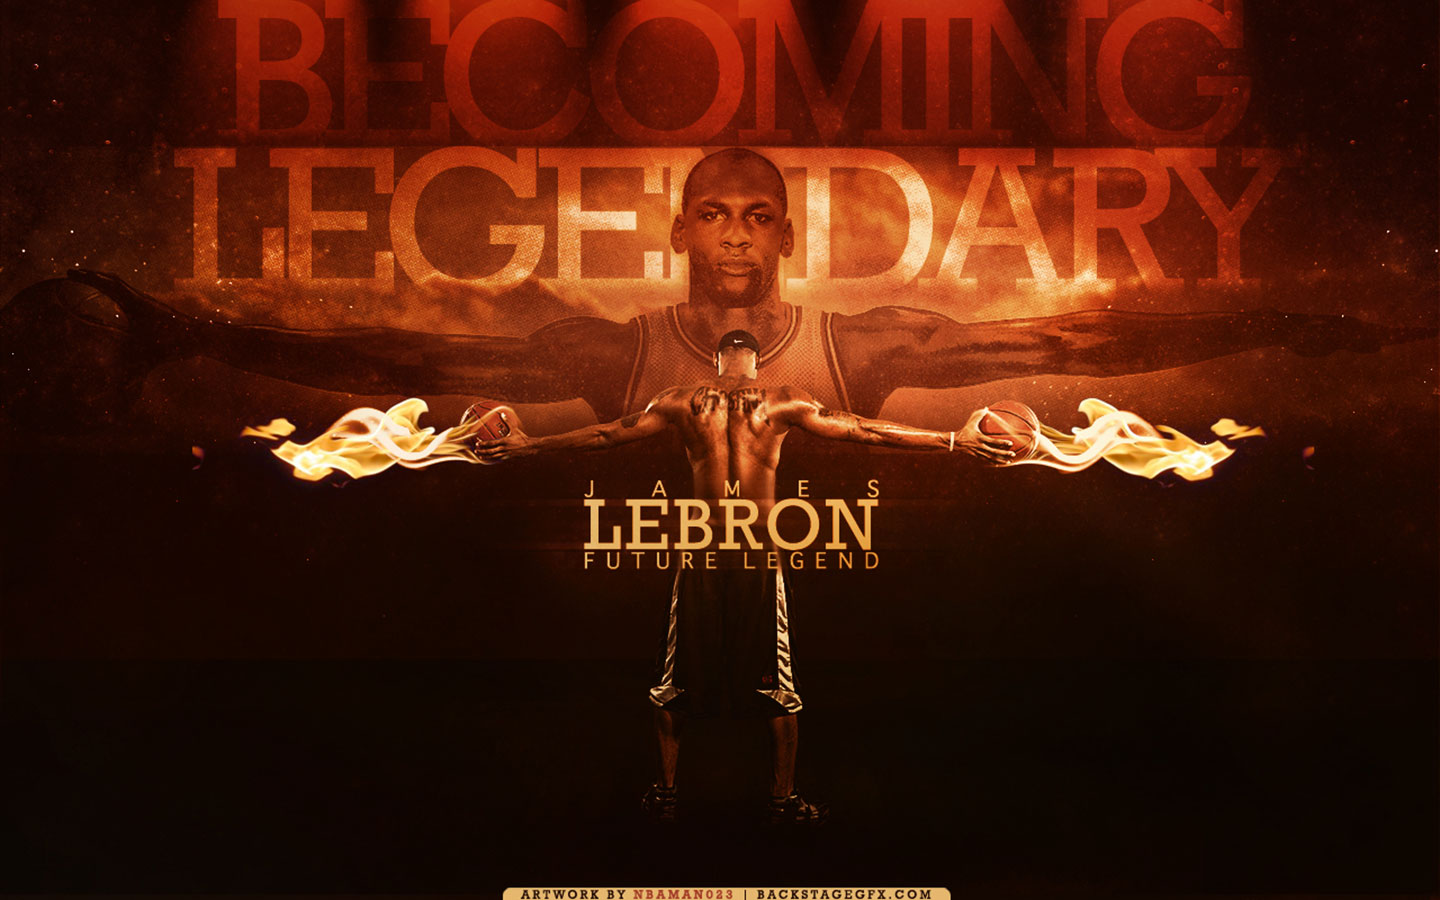 lebron james personal information big fan of nba daily